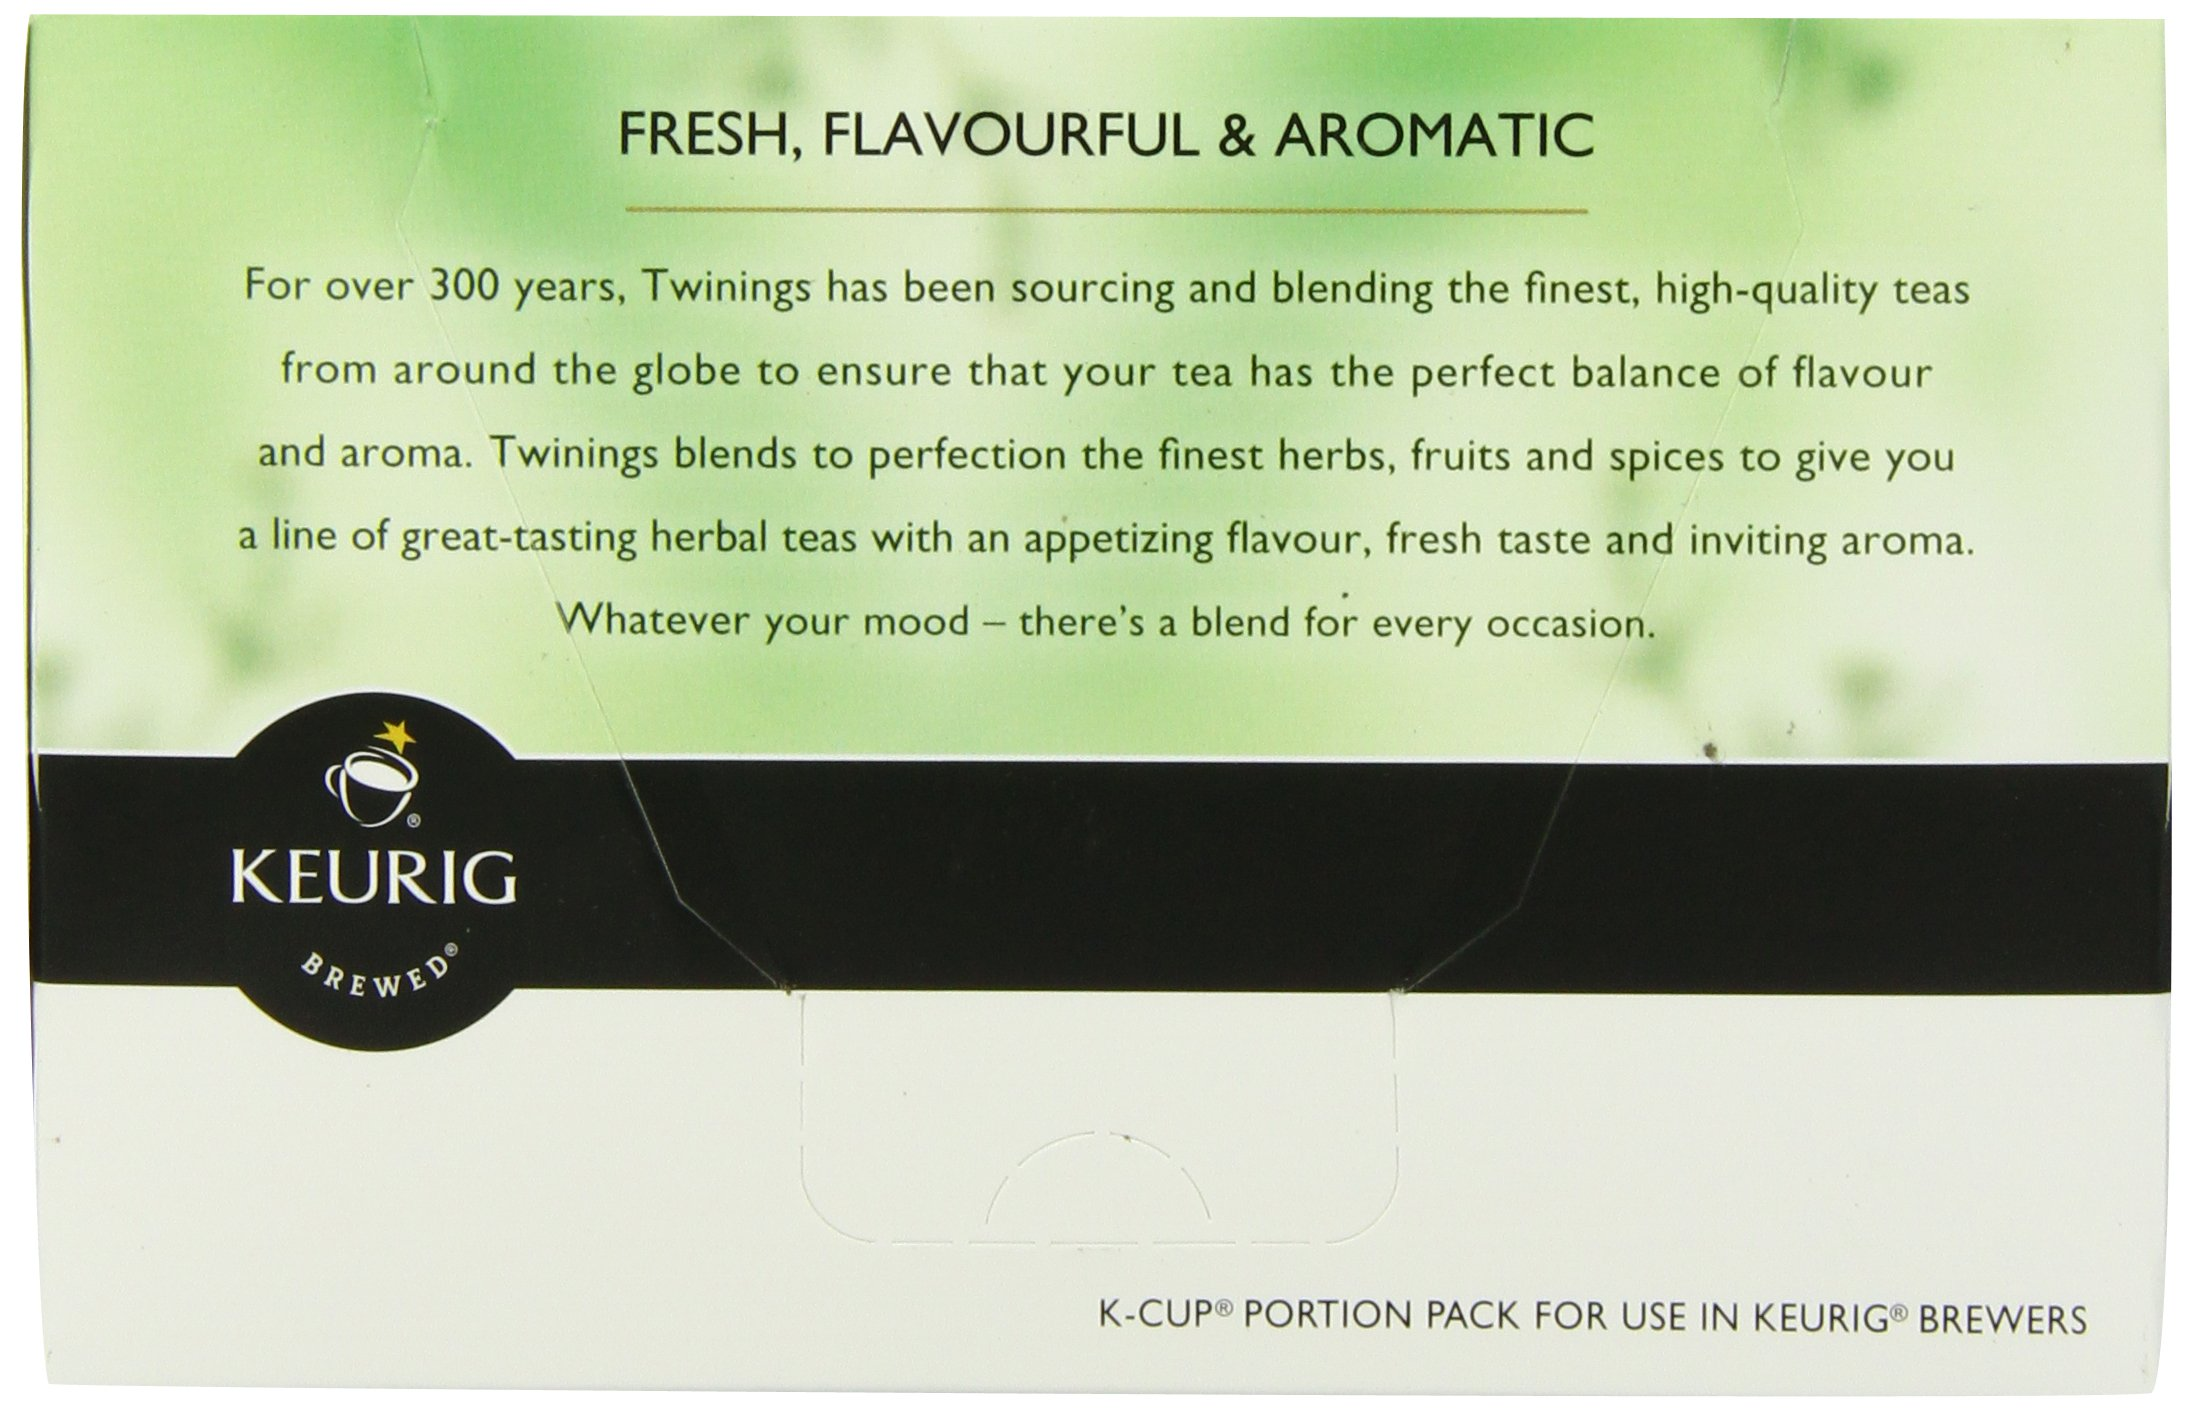 Twinings of London Pure Peppermint Tea K-Cups for Keurig, 12 Count (Pack of 6) by Twinings (Image #4)